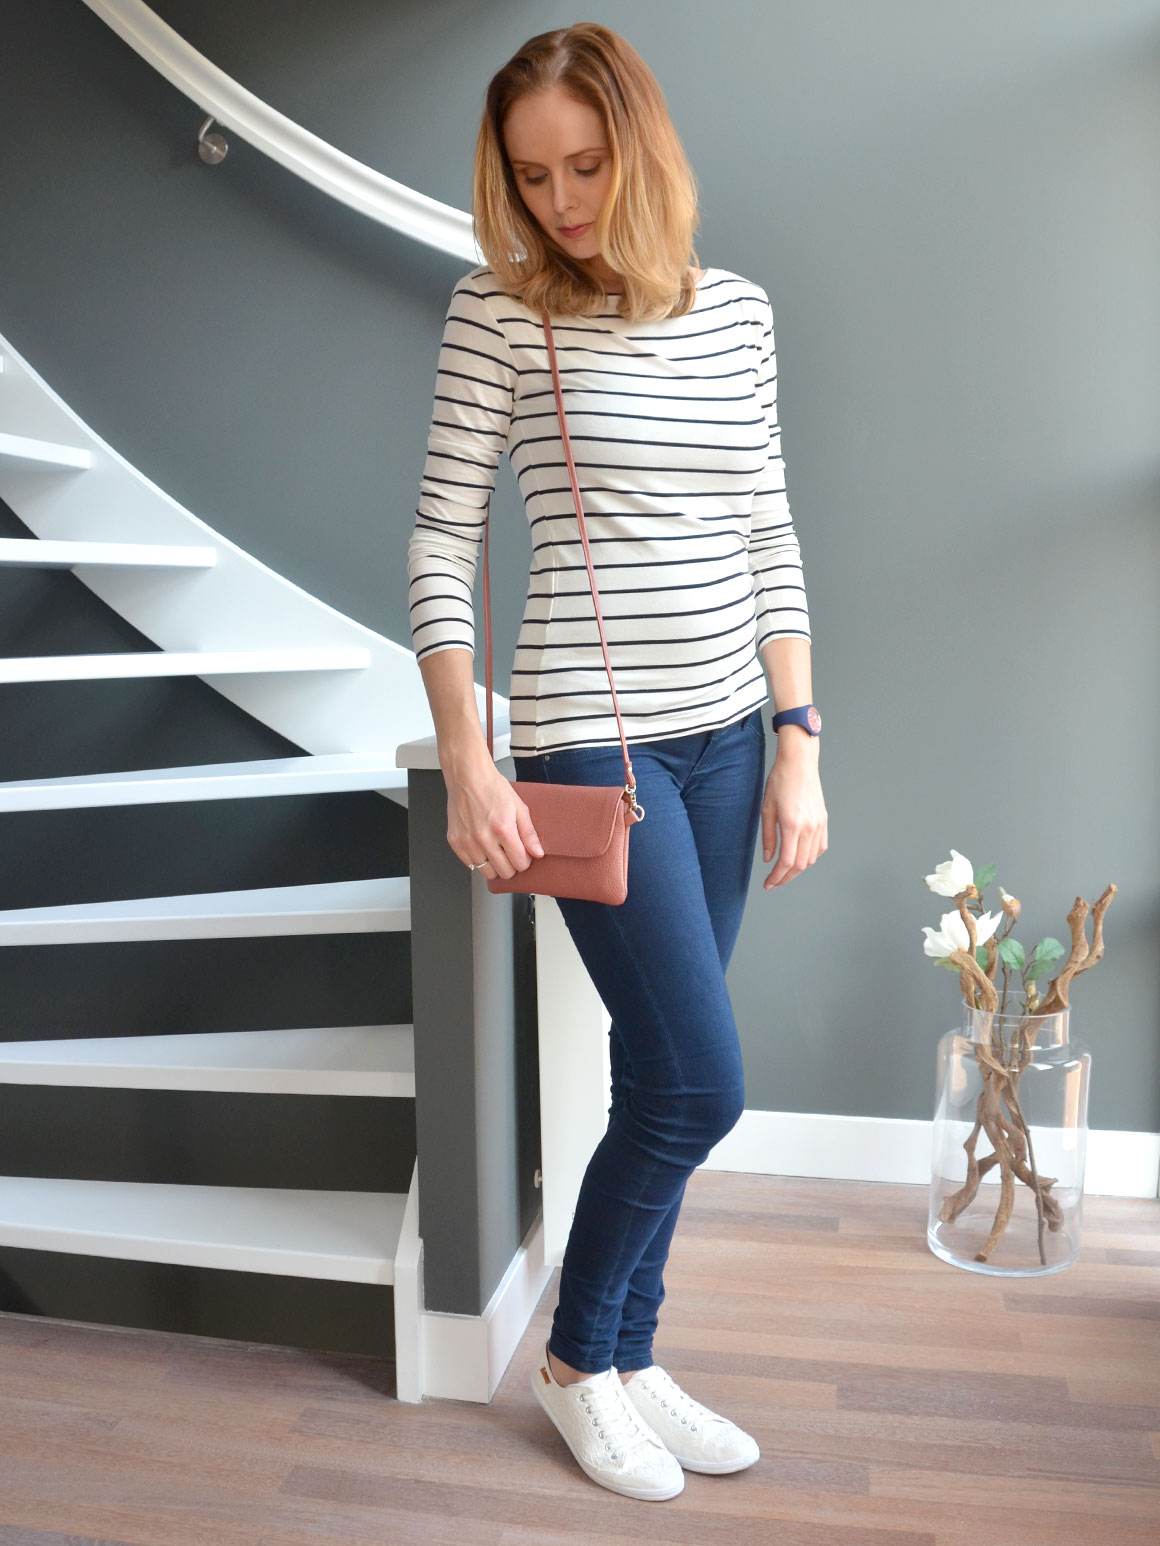 Outfit: Lace & Stripes